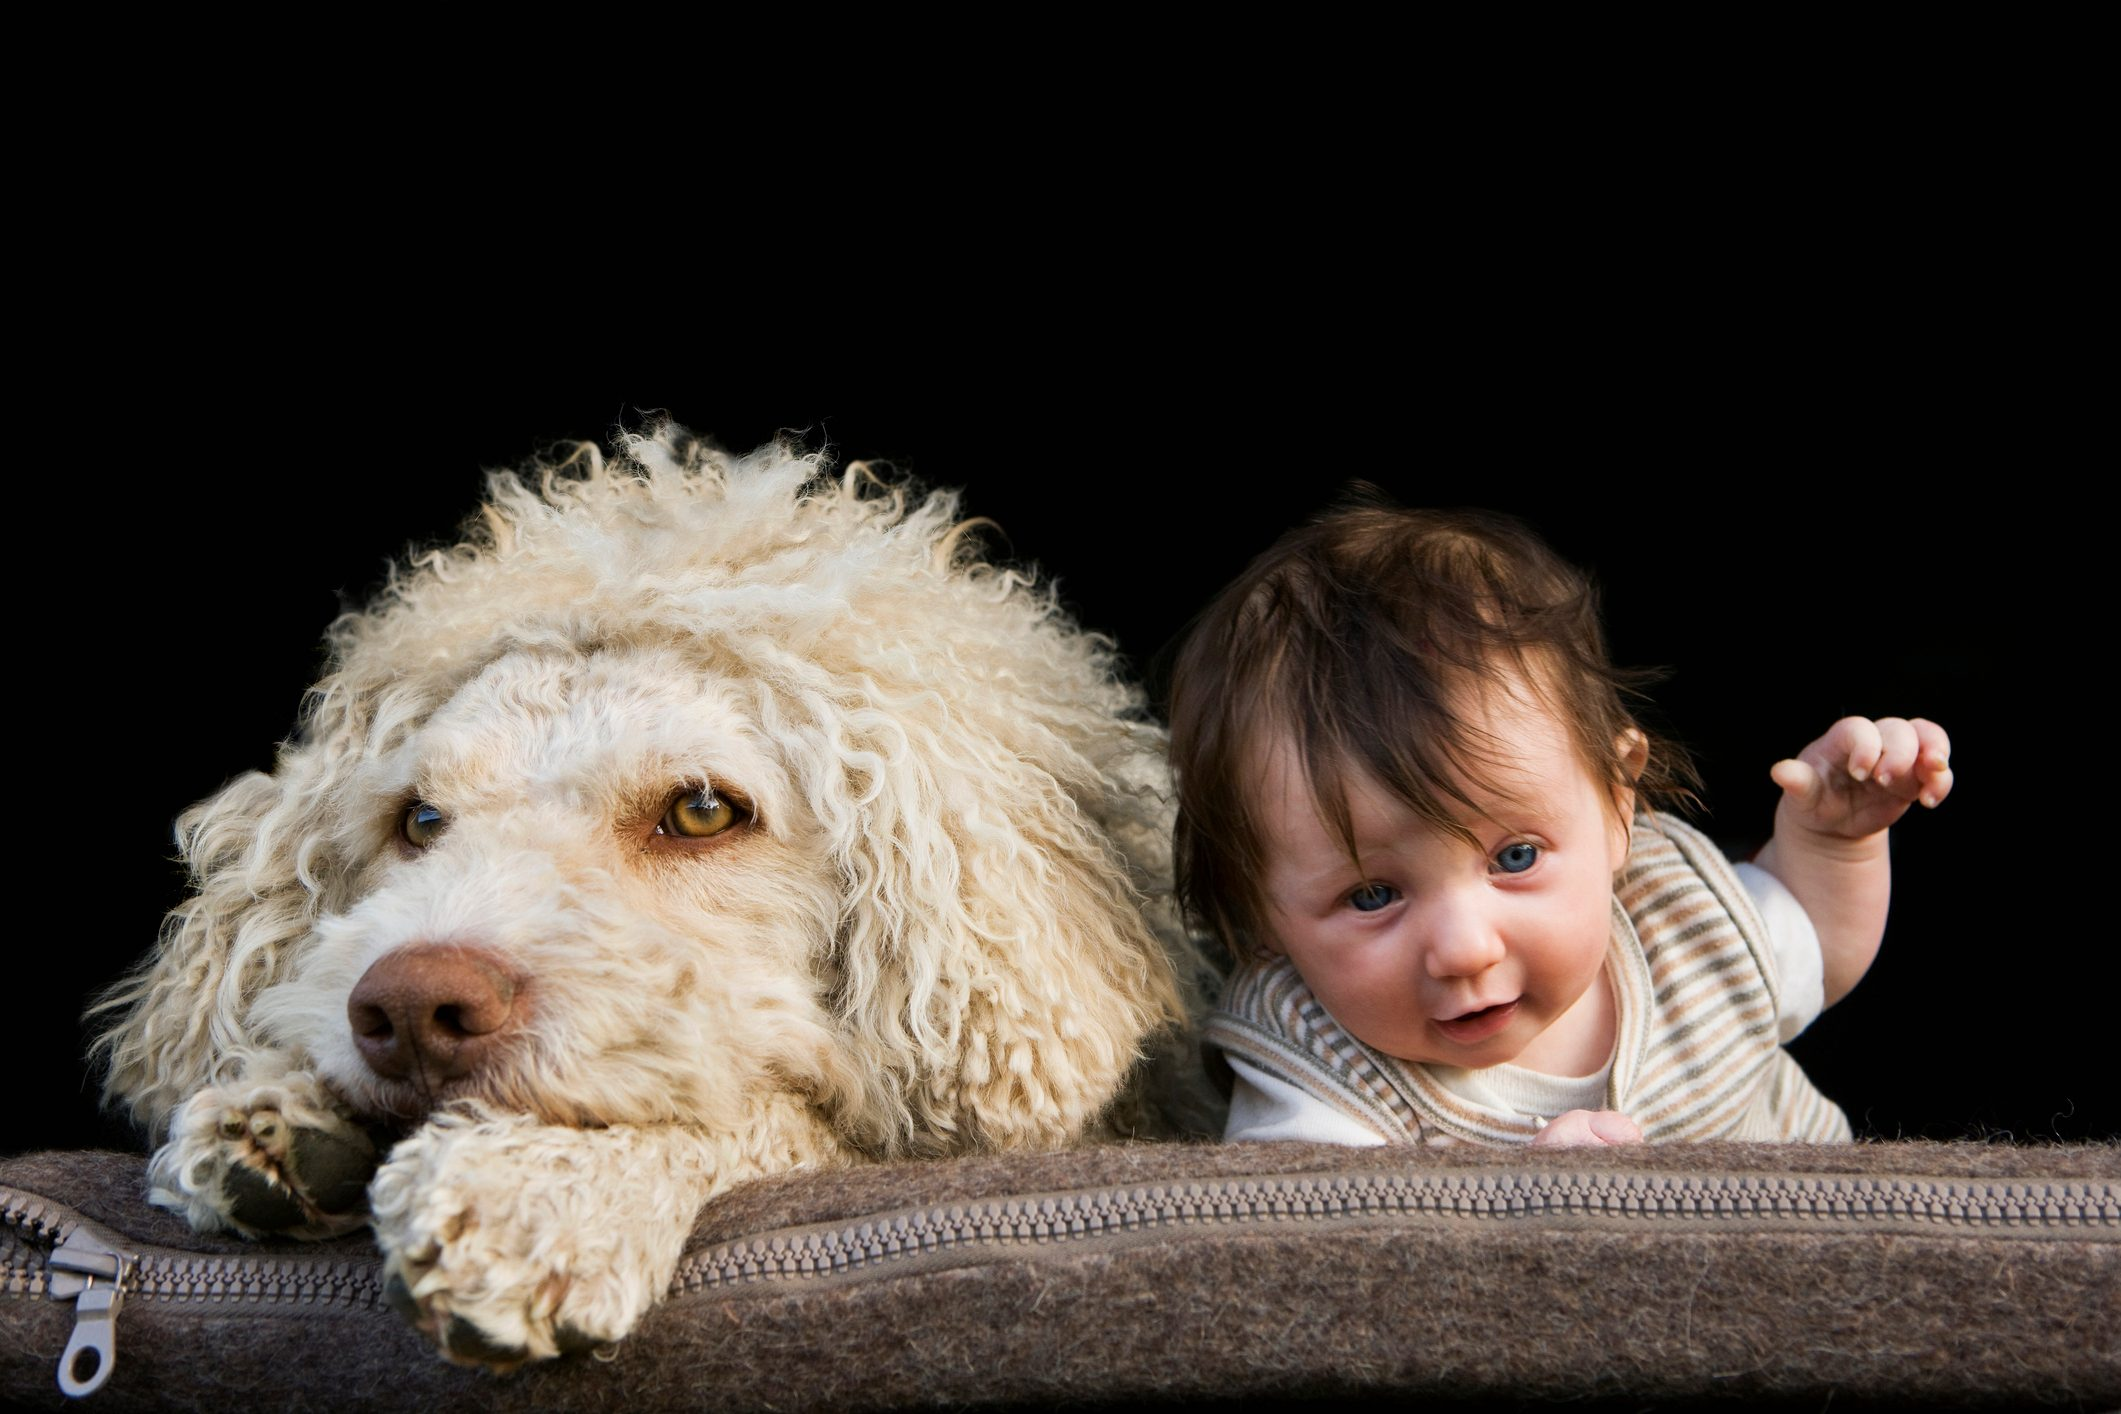 A dog and baby lying on their stomachs side by side